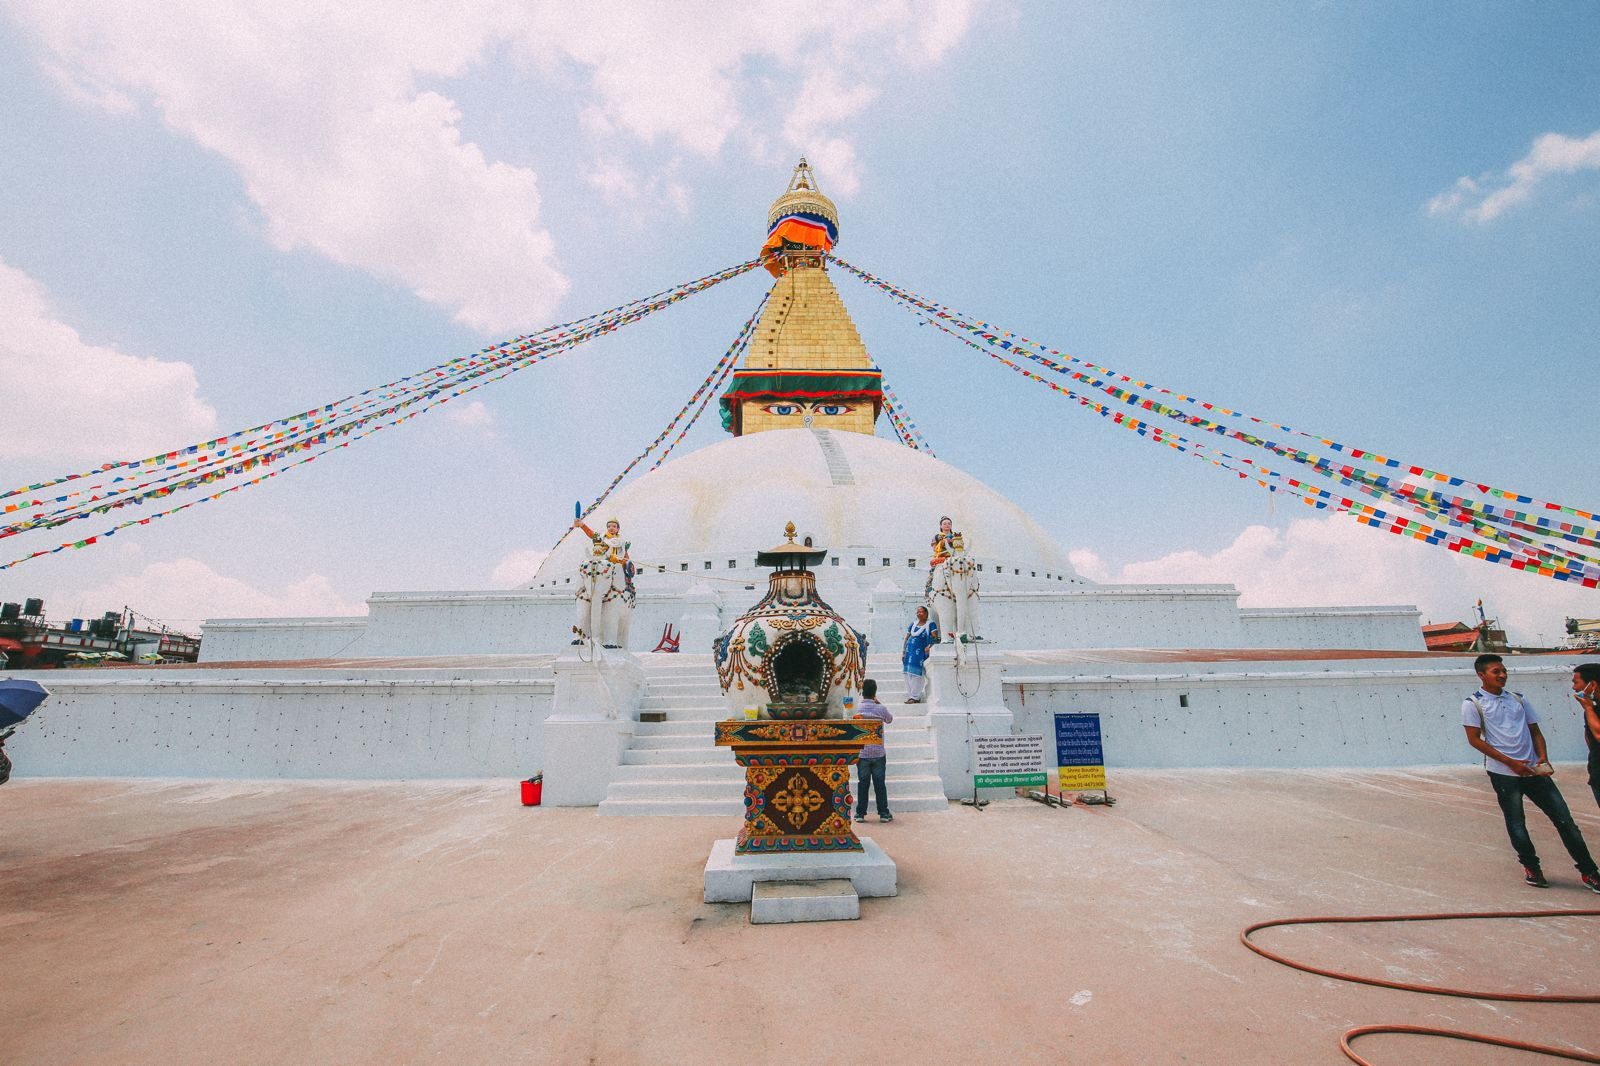 The UNESCO World Heritage Site Of Boudhanath Stupa In Kathmandu, Nepal (9)